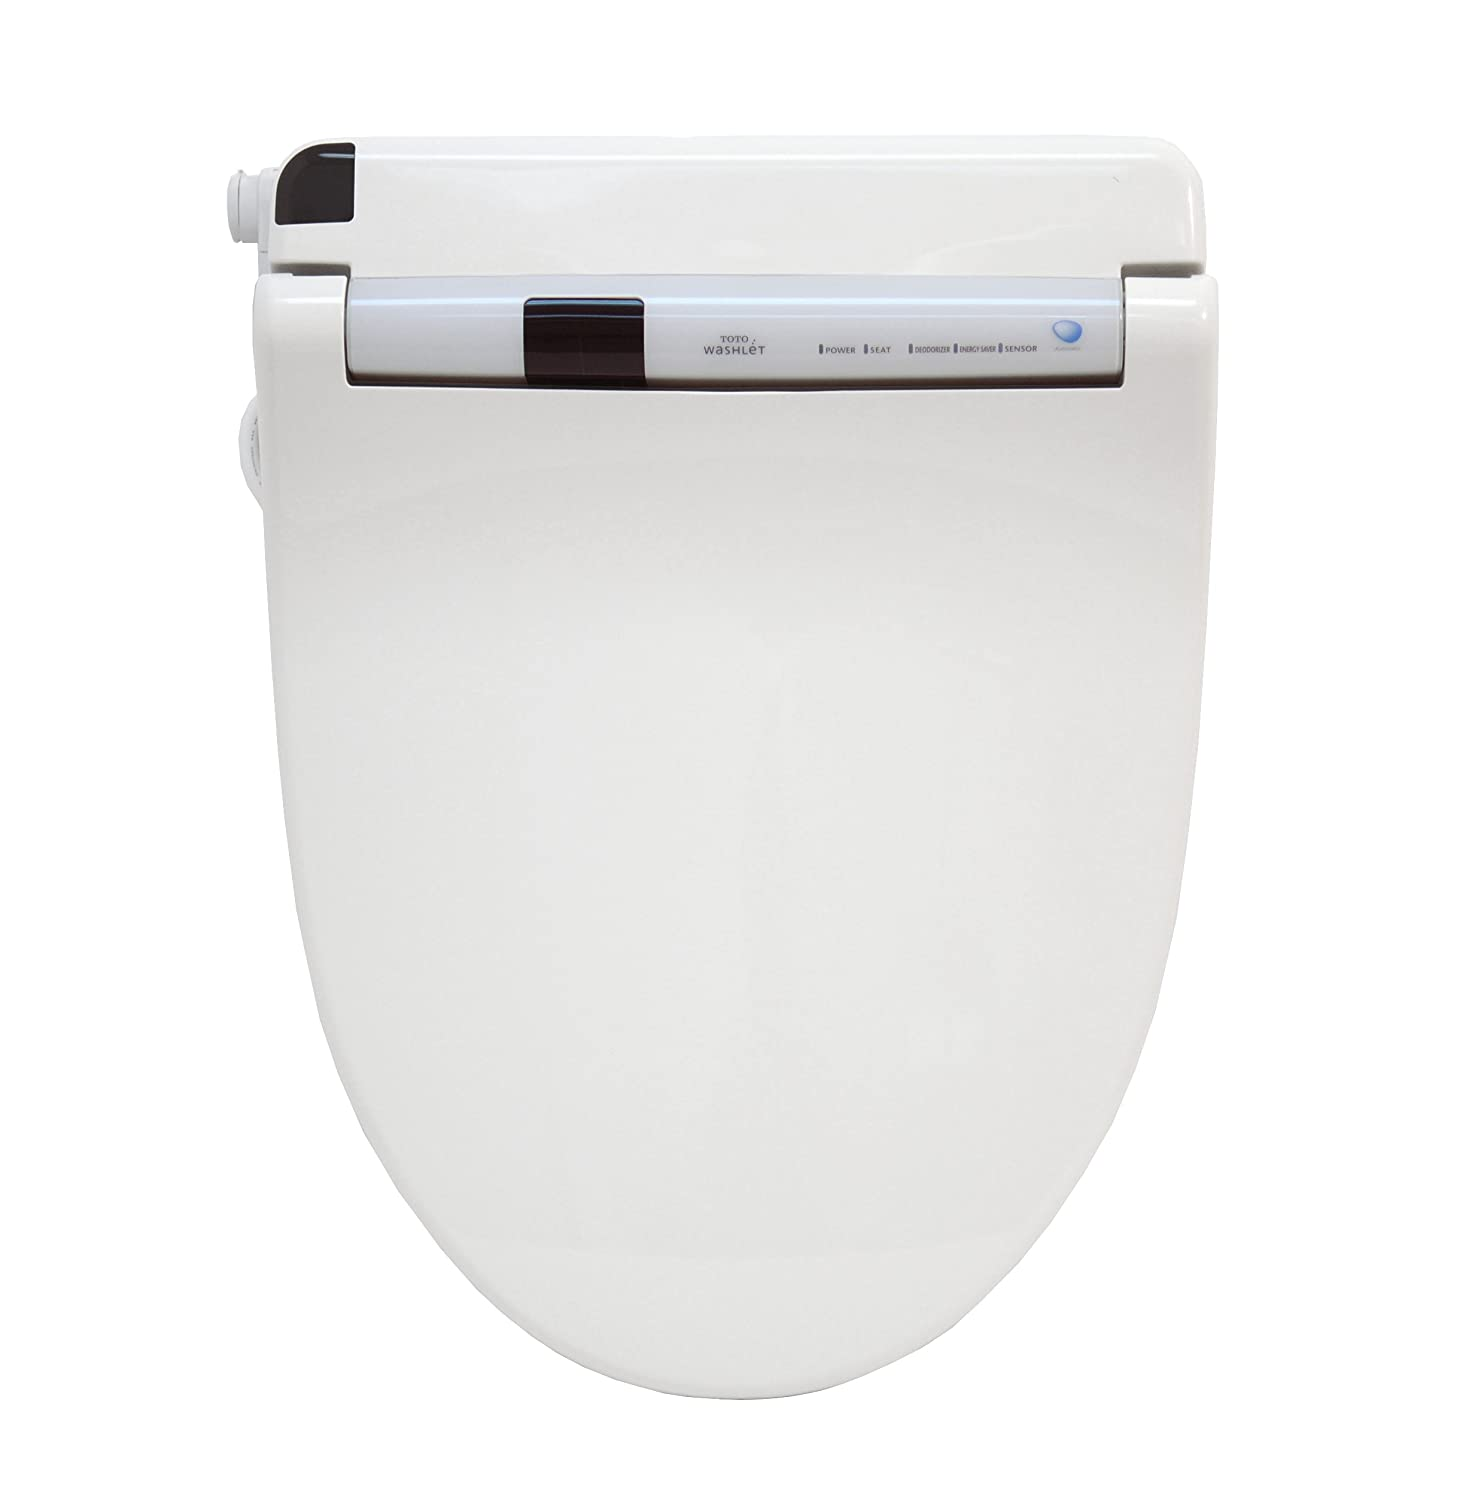 Toto SW563T695-01 Washlet S400 Round Front Toilet Seat for G-Max ...